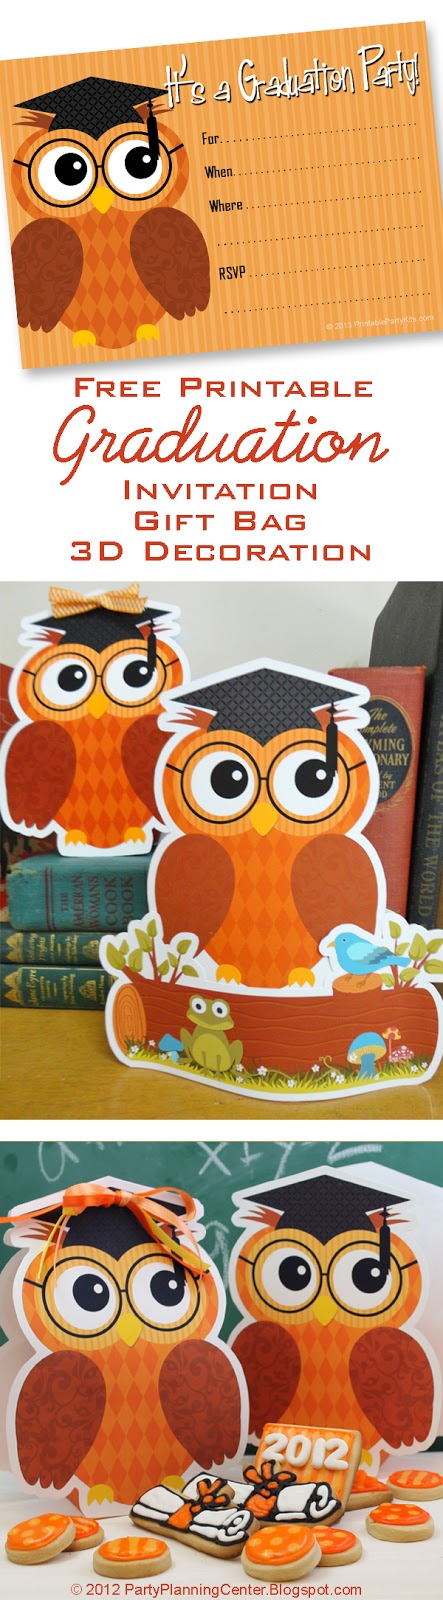 Can\u0027t find substitution for tag postbody--\u003e Printable Wise Owl